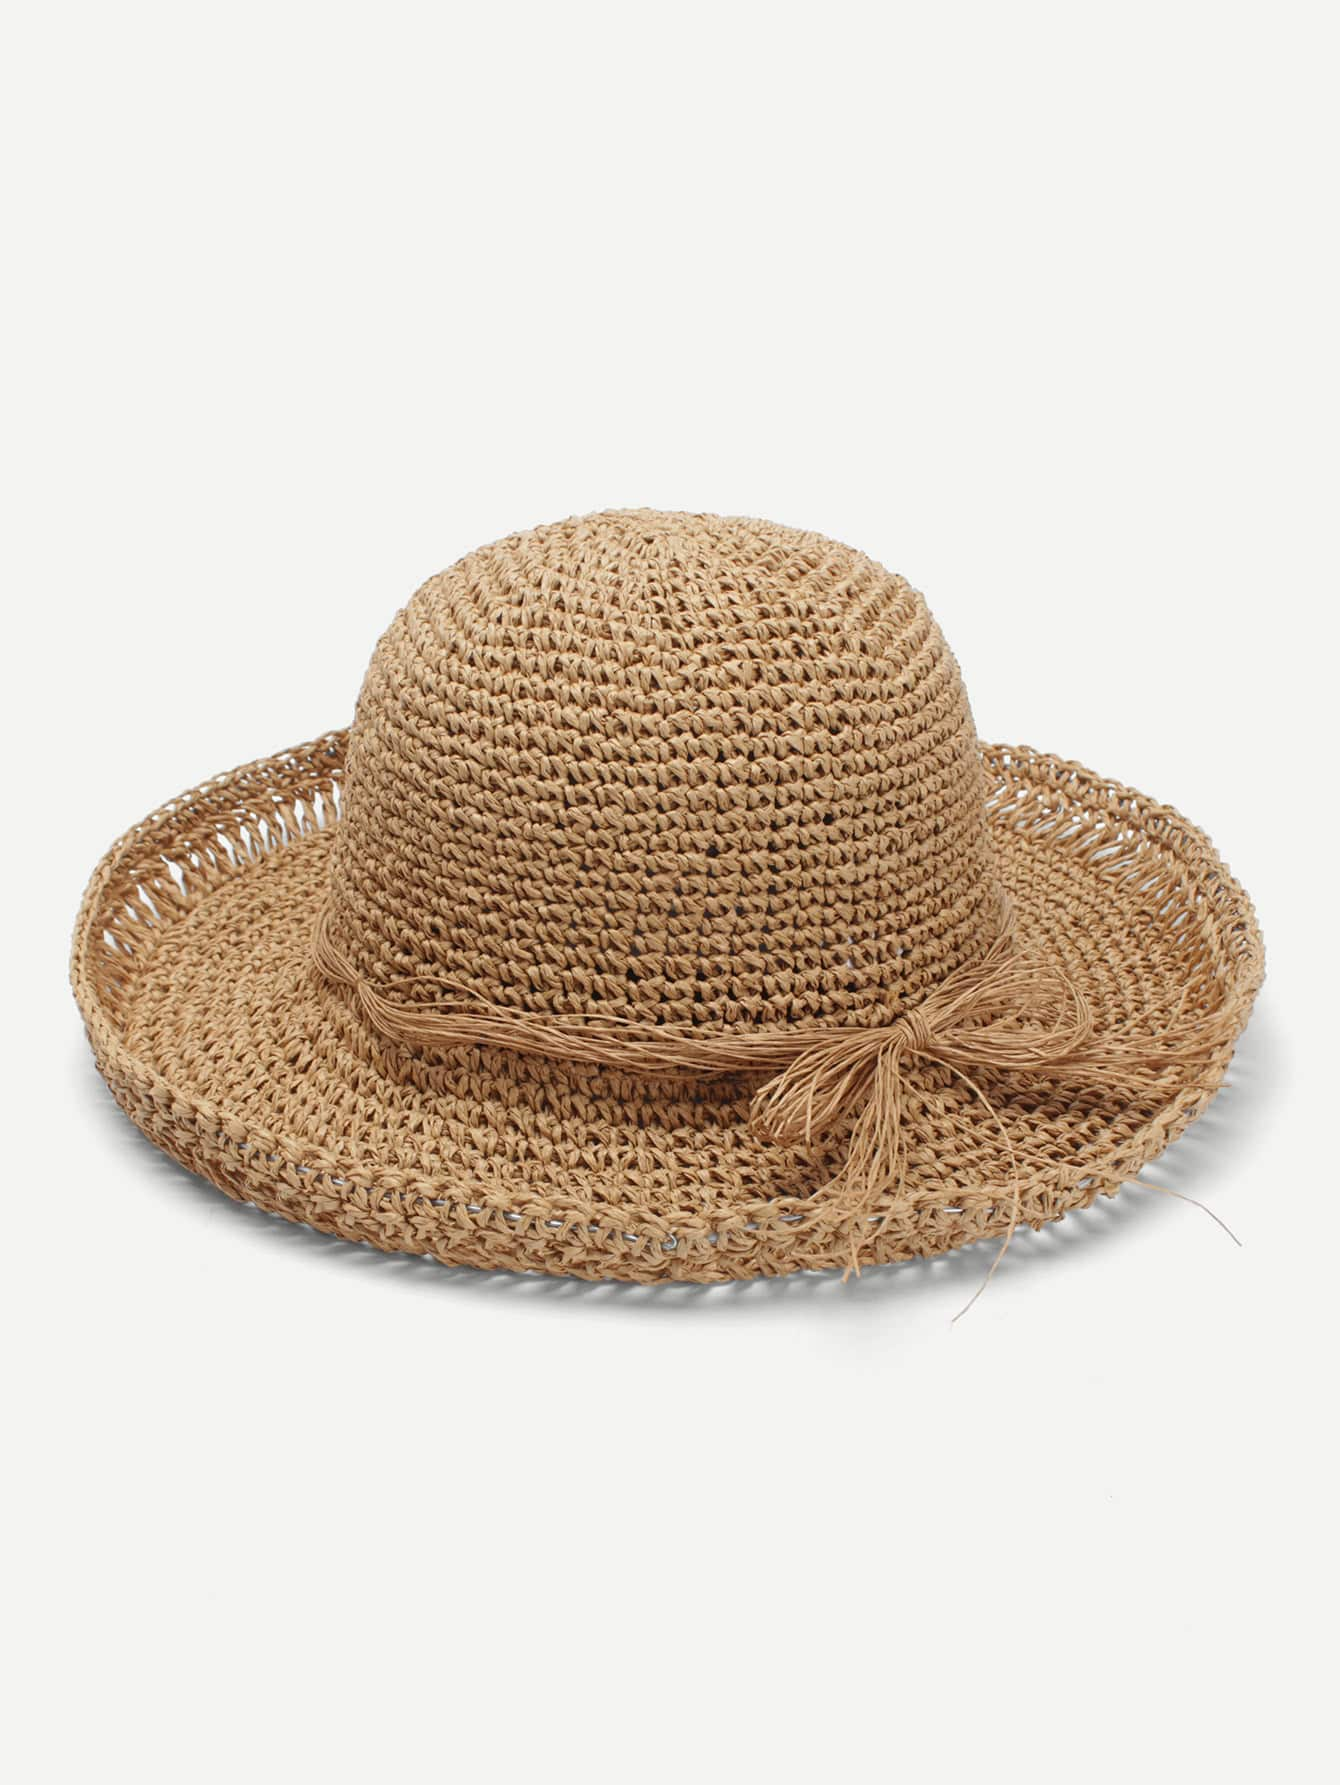 Bow Band Straw Boater Hat stetson men s breakers premium shantung straw hat